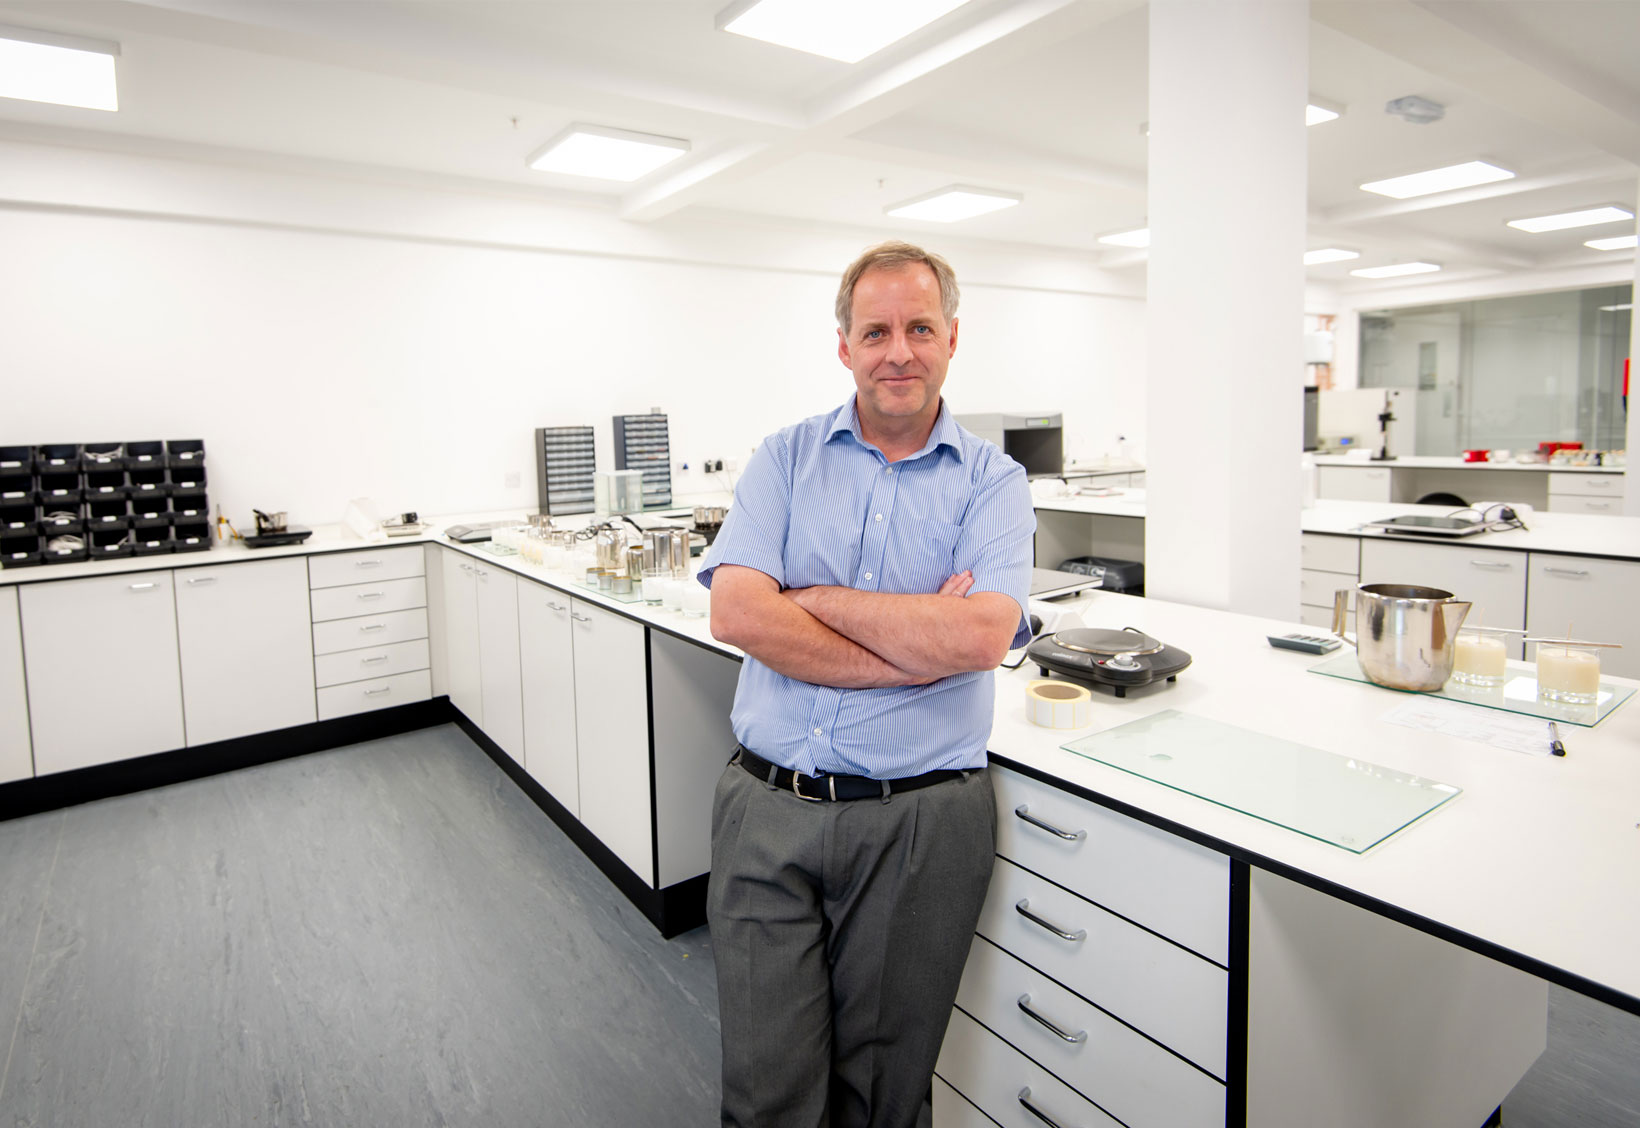 We're home to a state-of-the-art laboratory